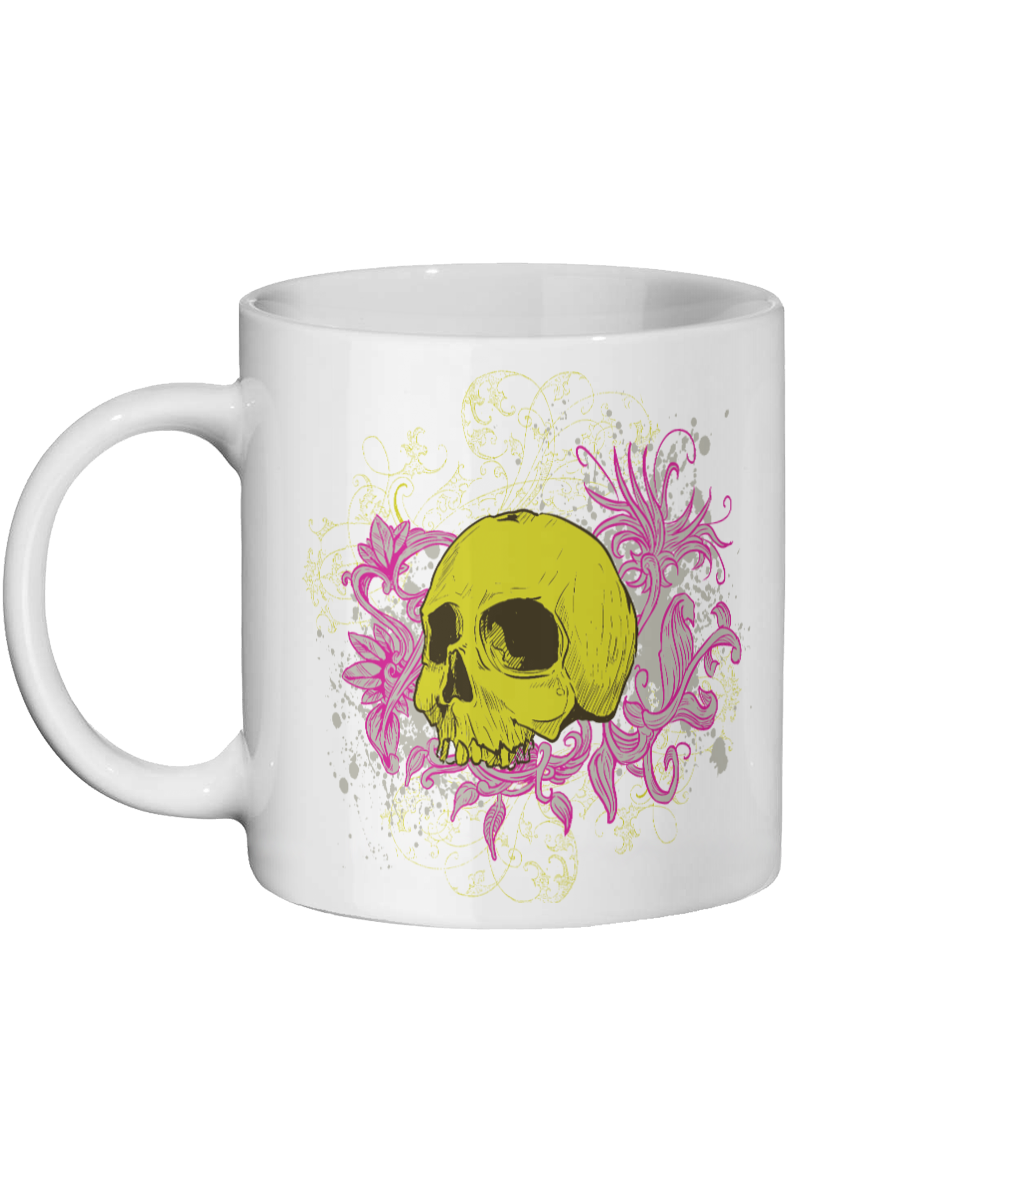 [personalised_mug]Urban Art Skull Custom 11oz Photo Mug - status mugs